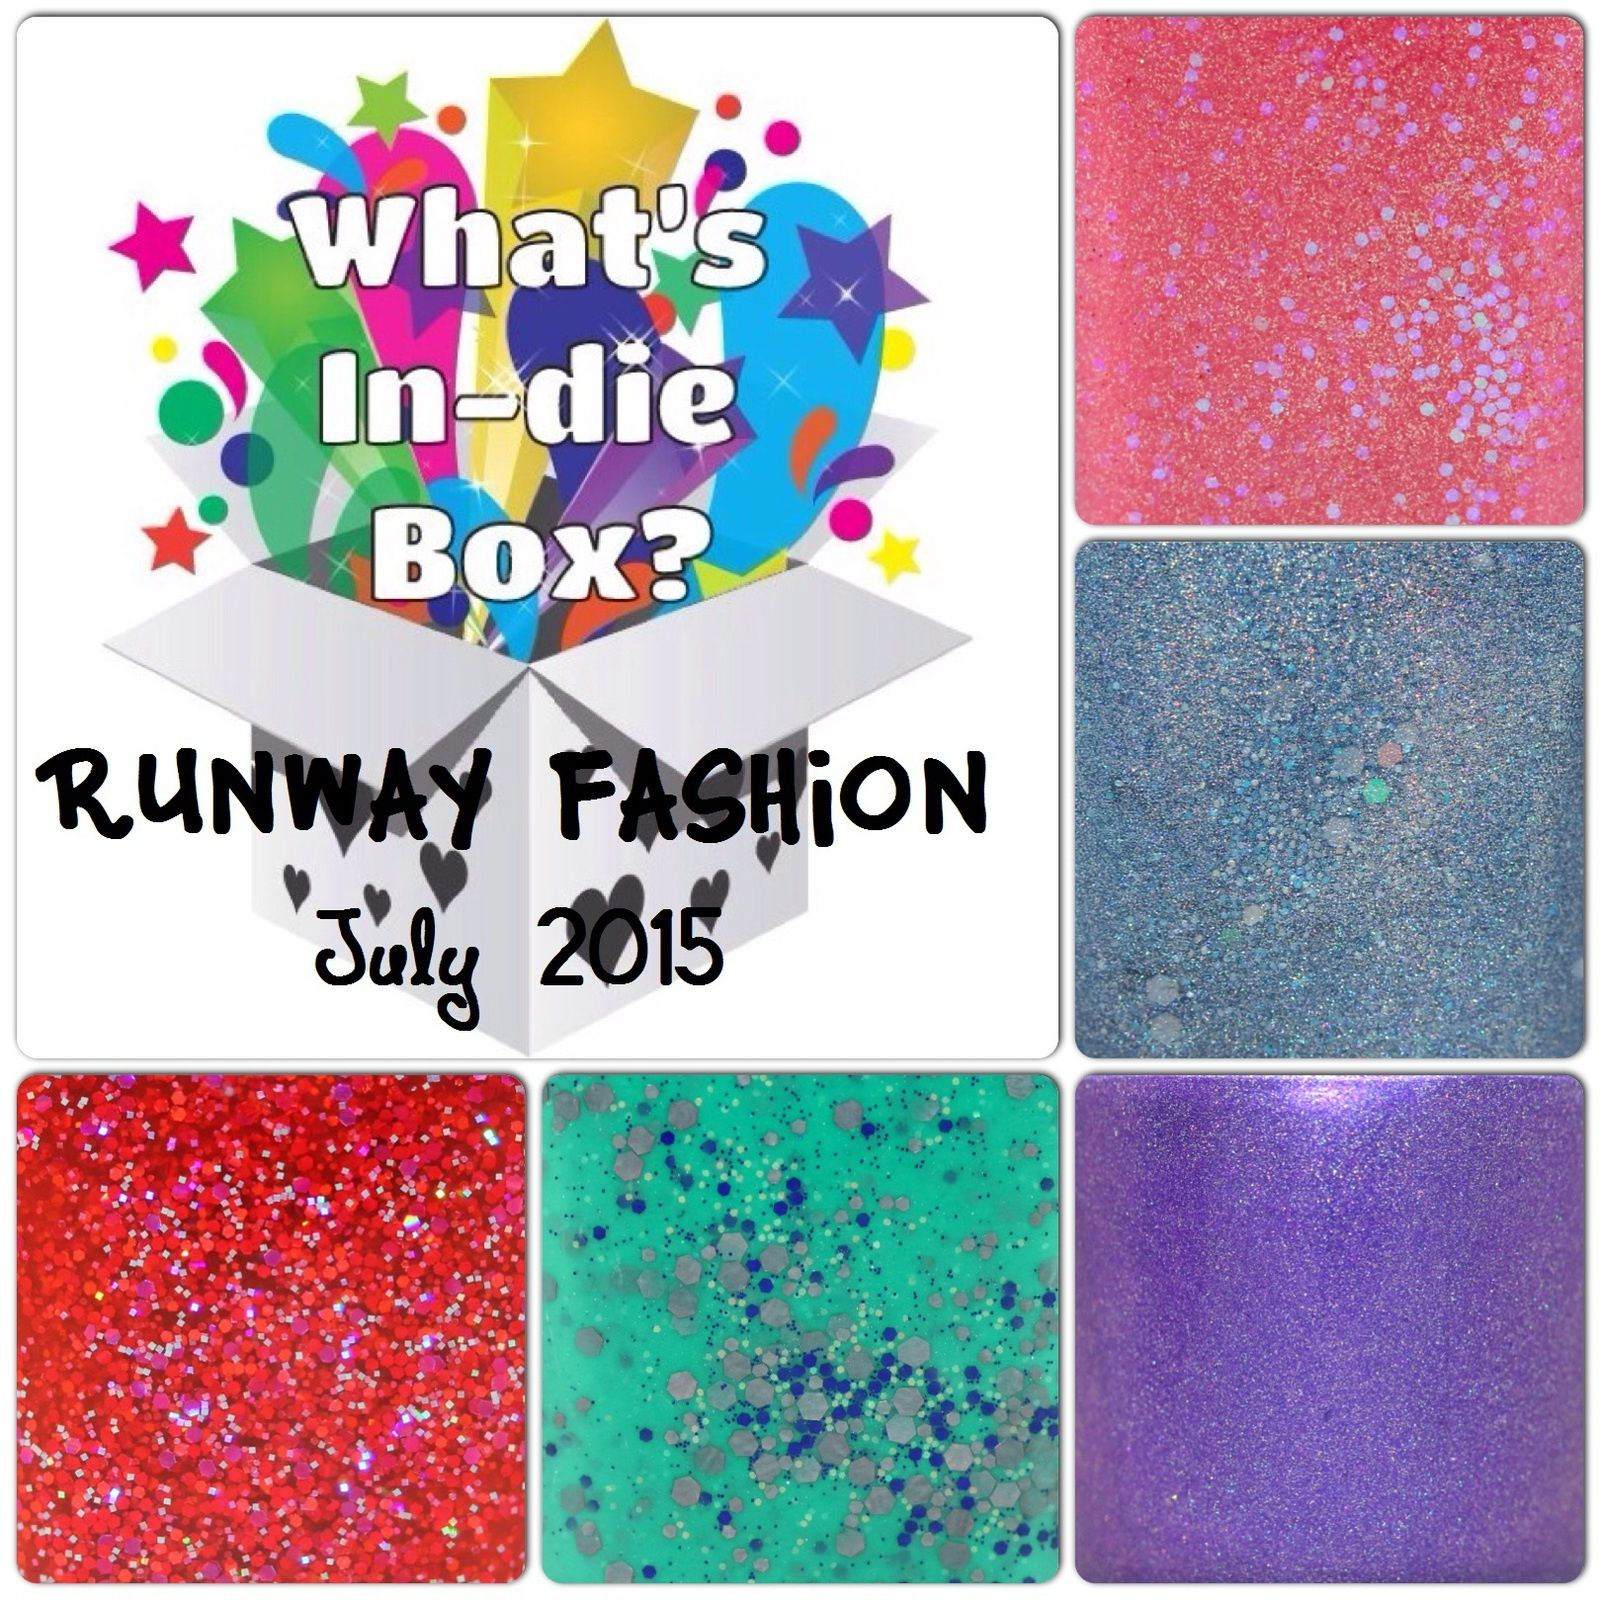 What's Indie Box - July 2015 - Runway Fashion